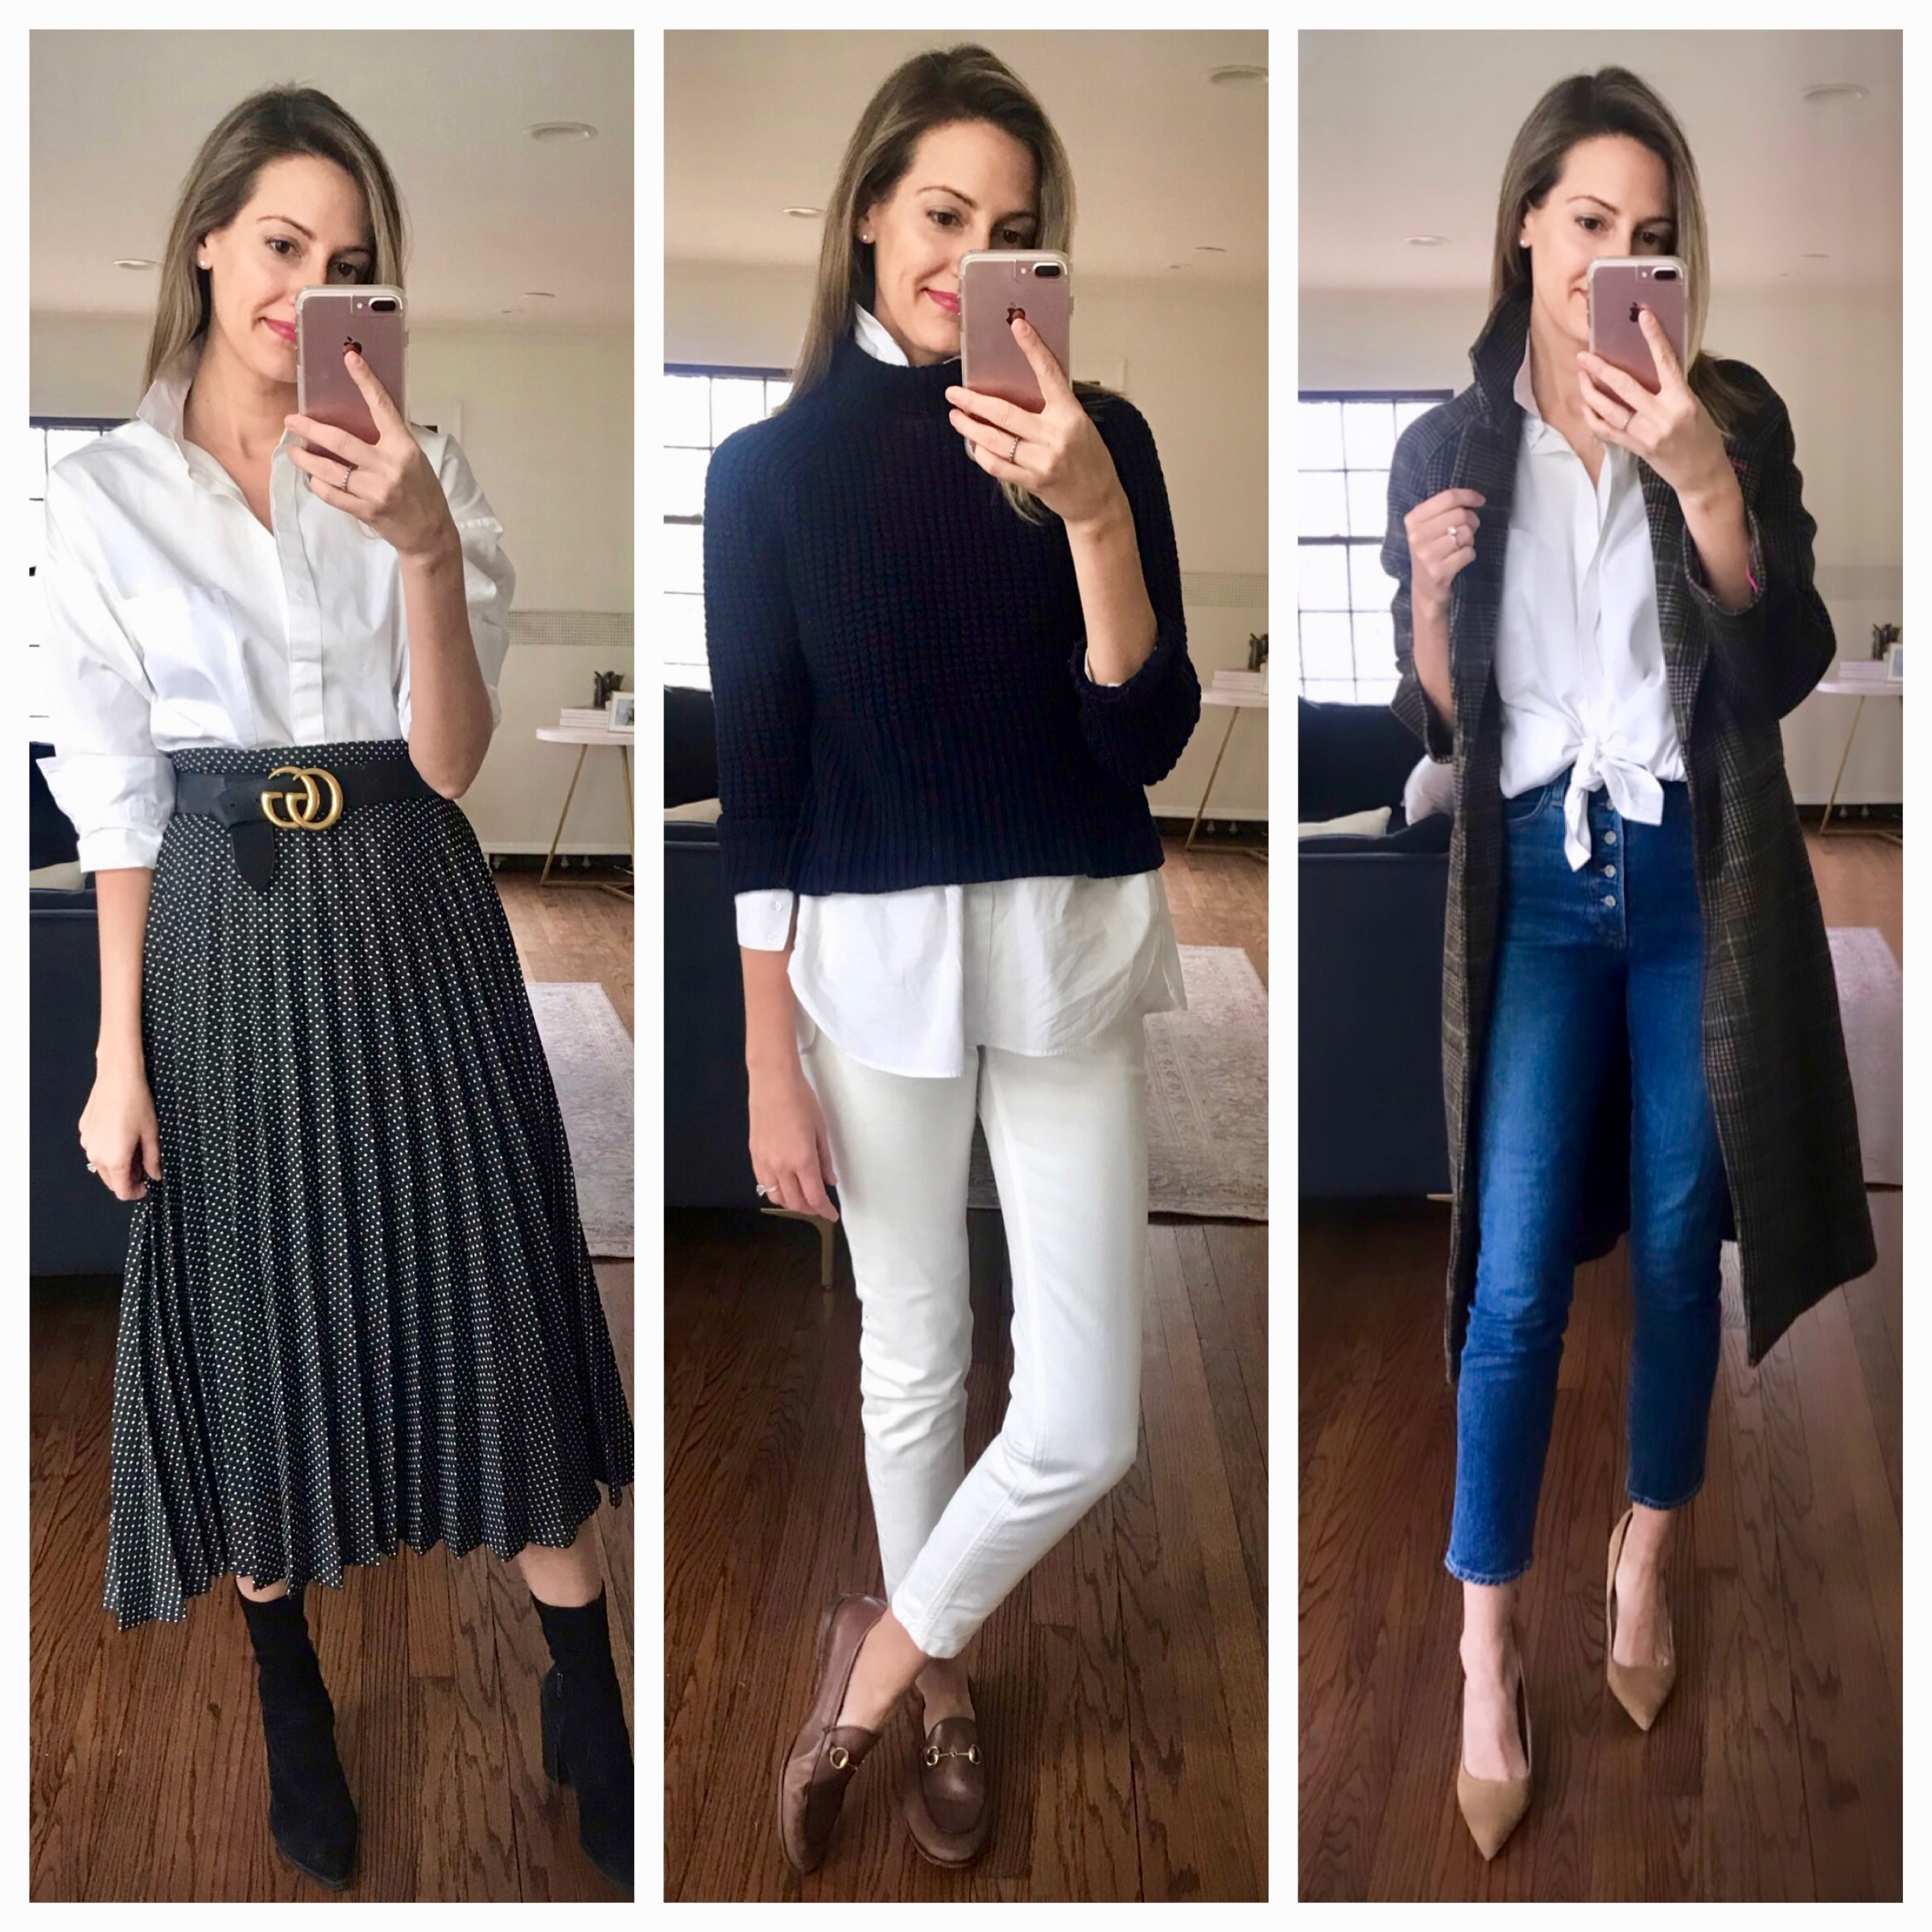 shop your closet - classic white button-up styled 3 ways